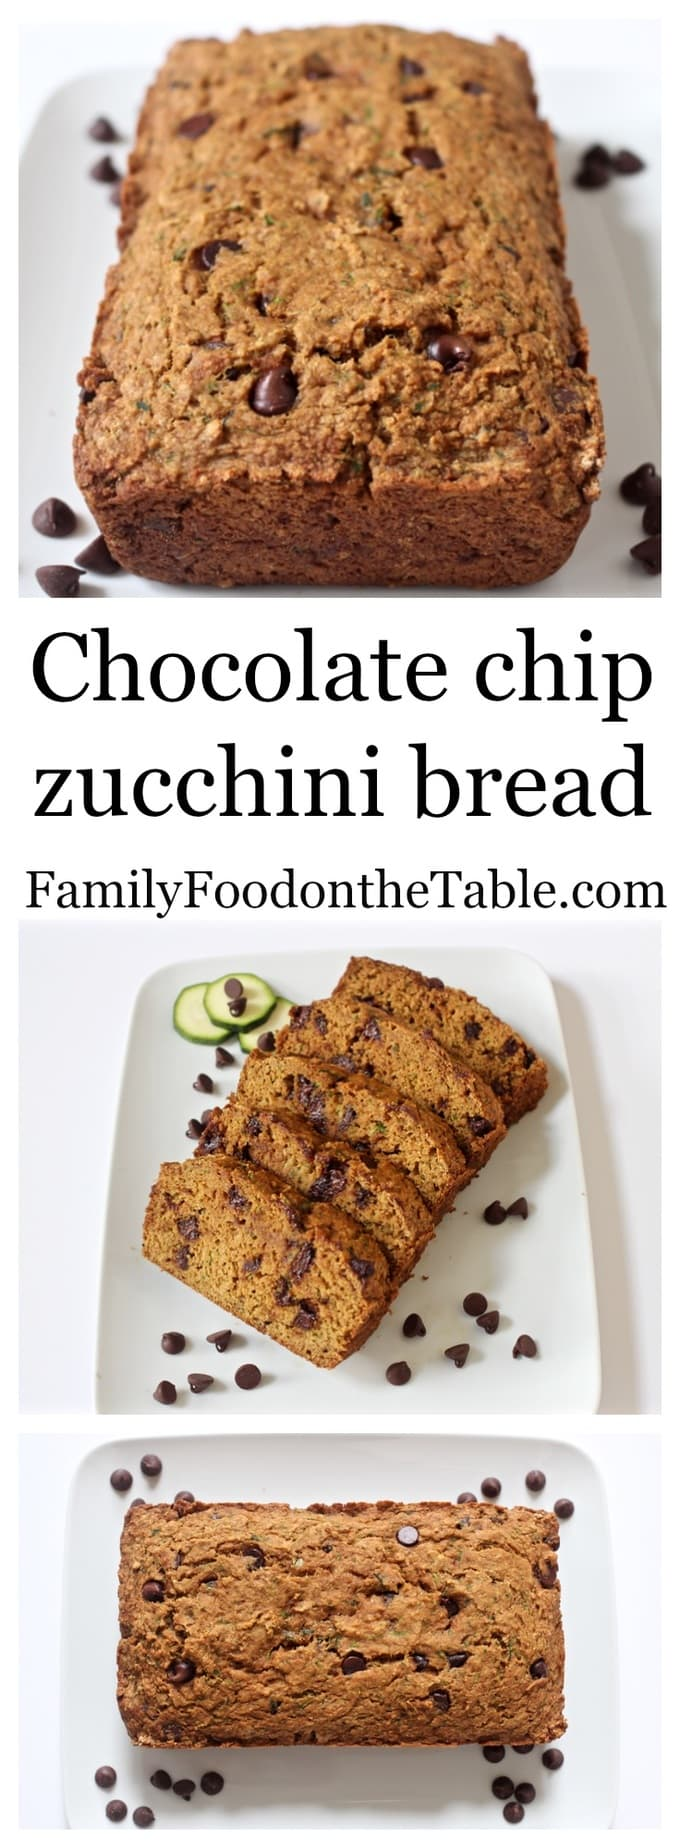 A delicious whole wheat zucchini bread studded with chocolate chips!